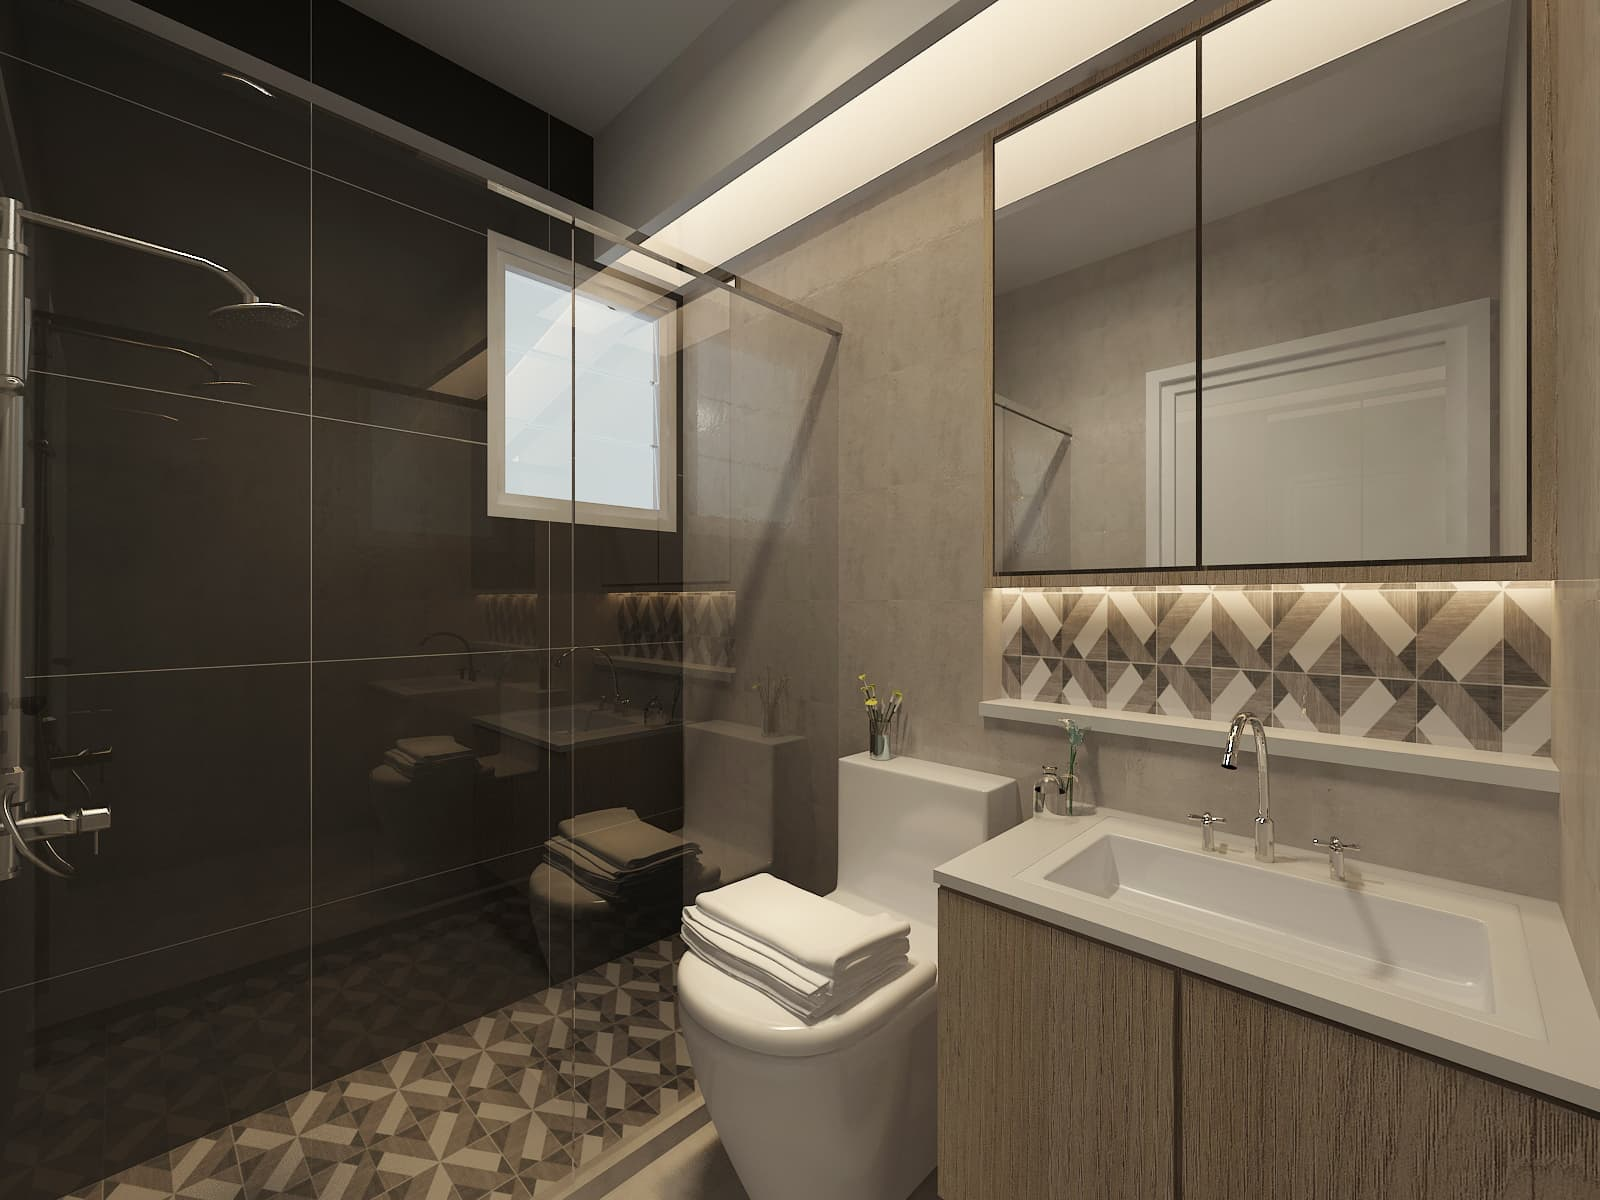 Designer S Hdb Bto Premium Design Build Flat Promotion Package Style Space Id